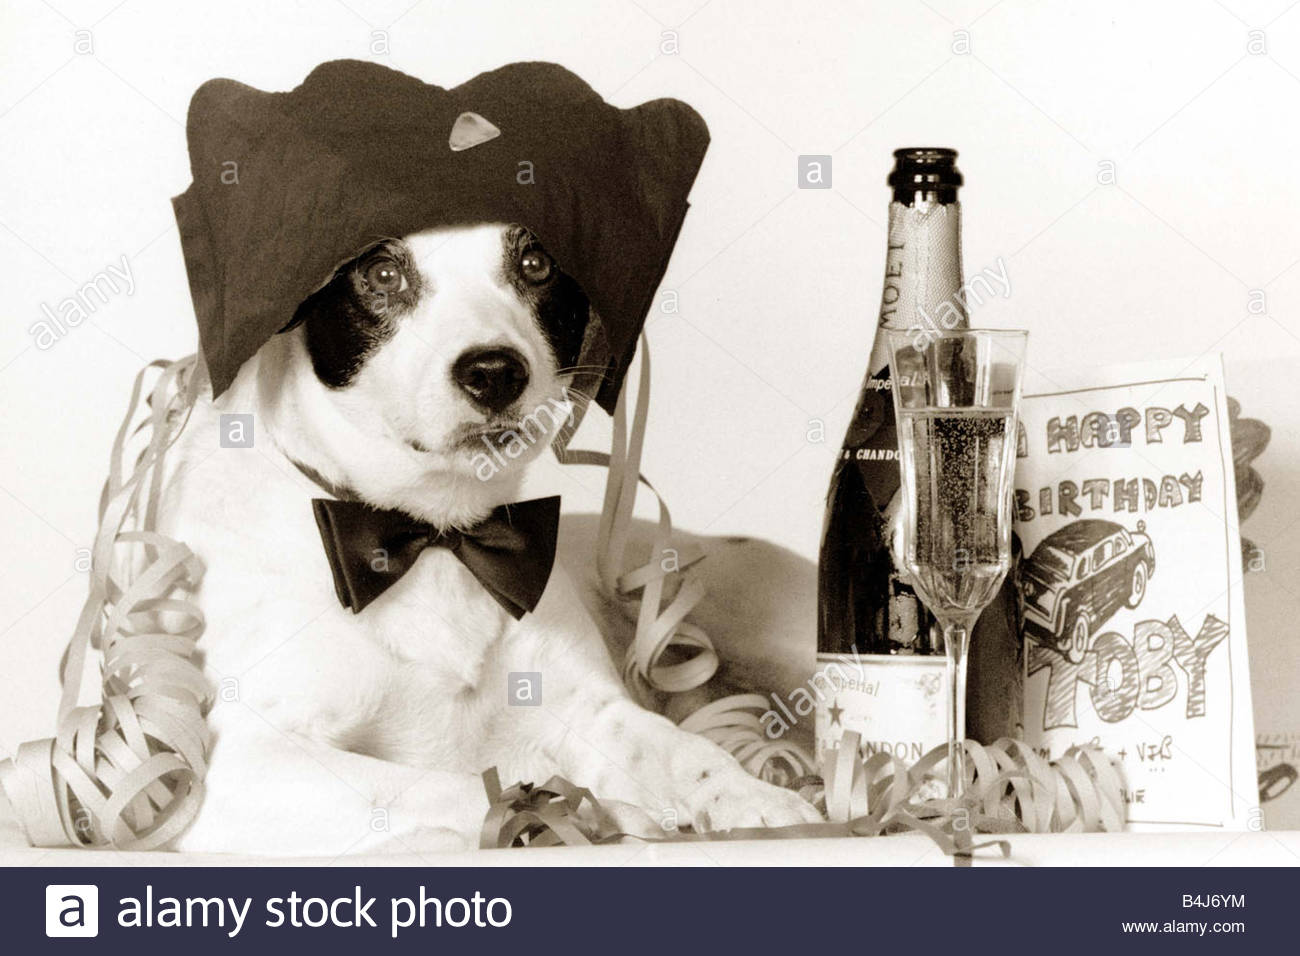 free border collie birthday cards ; party-animal-border-collie-dog-celebrating-his-borthday-with-a-bottle-B4J6YM